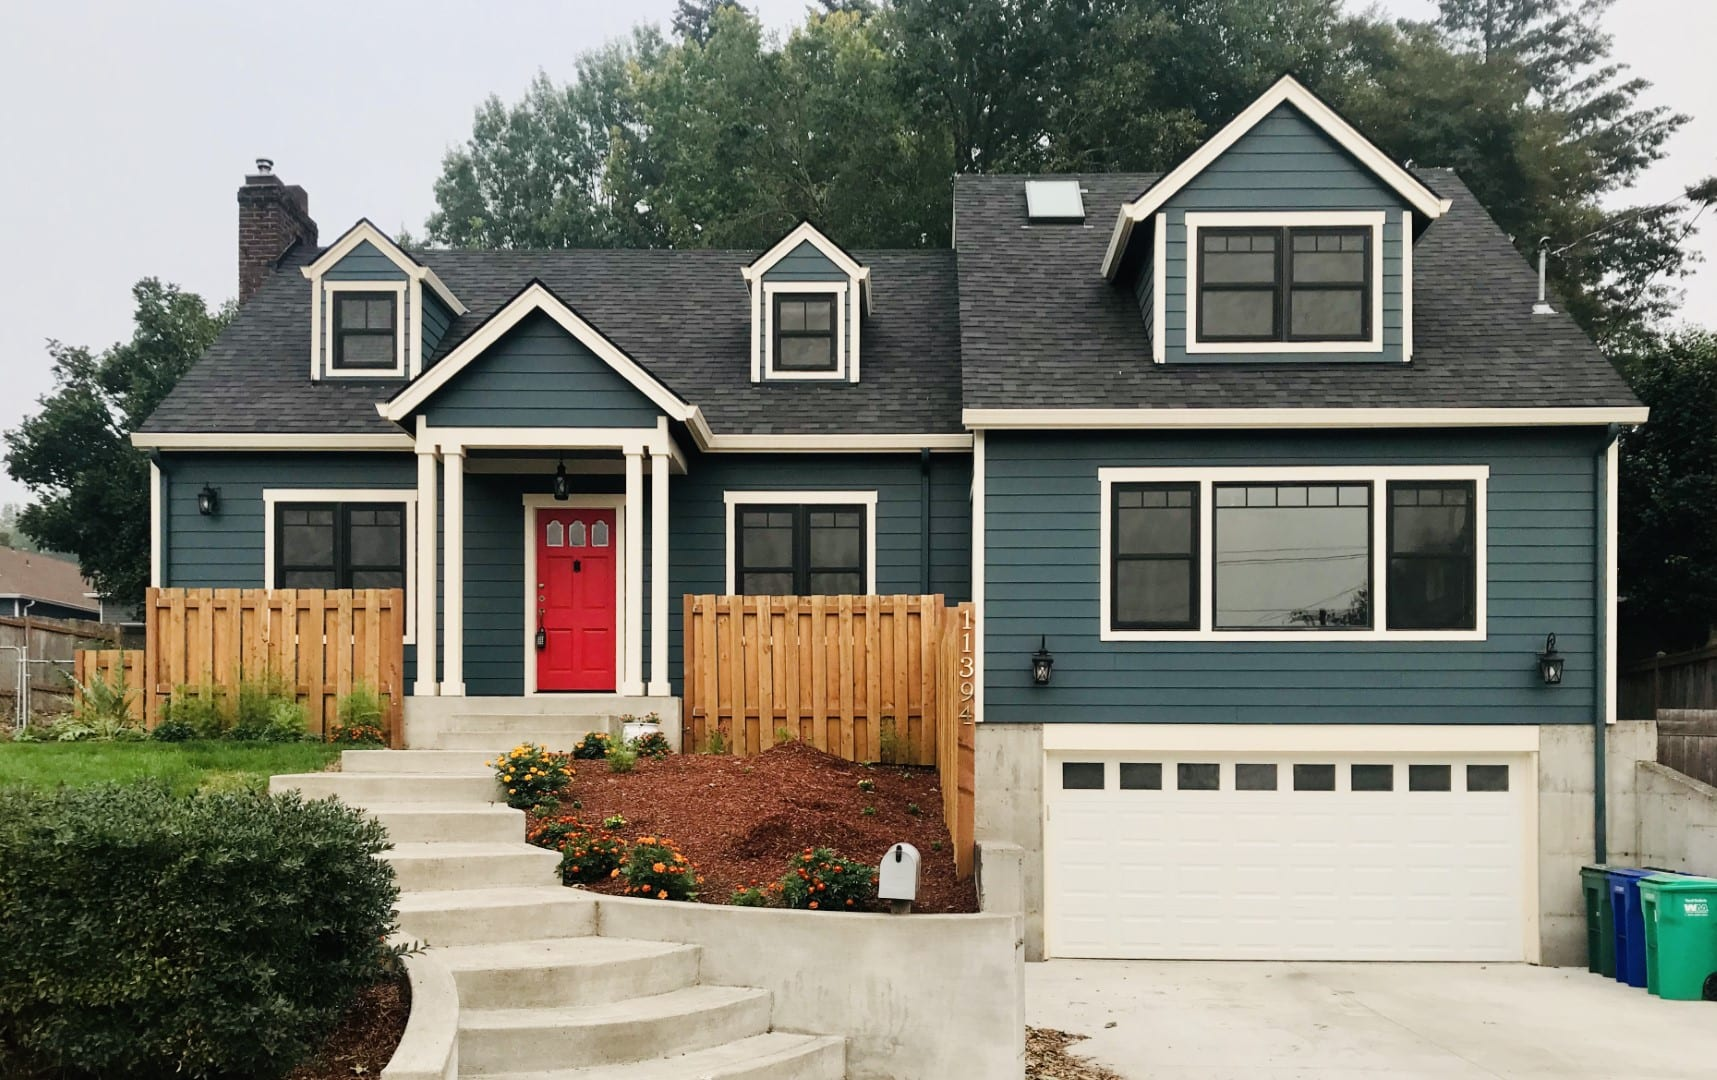 James Hardie Siding & Malarkey Roof in Milwaukie Oregon